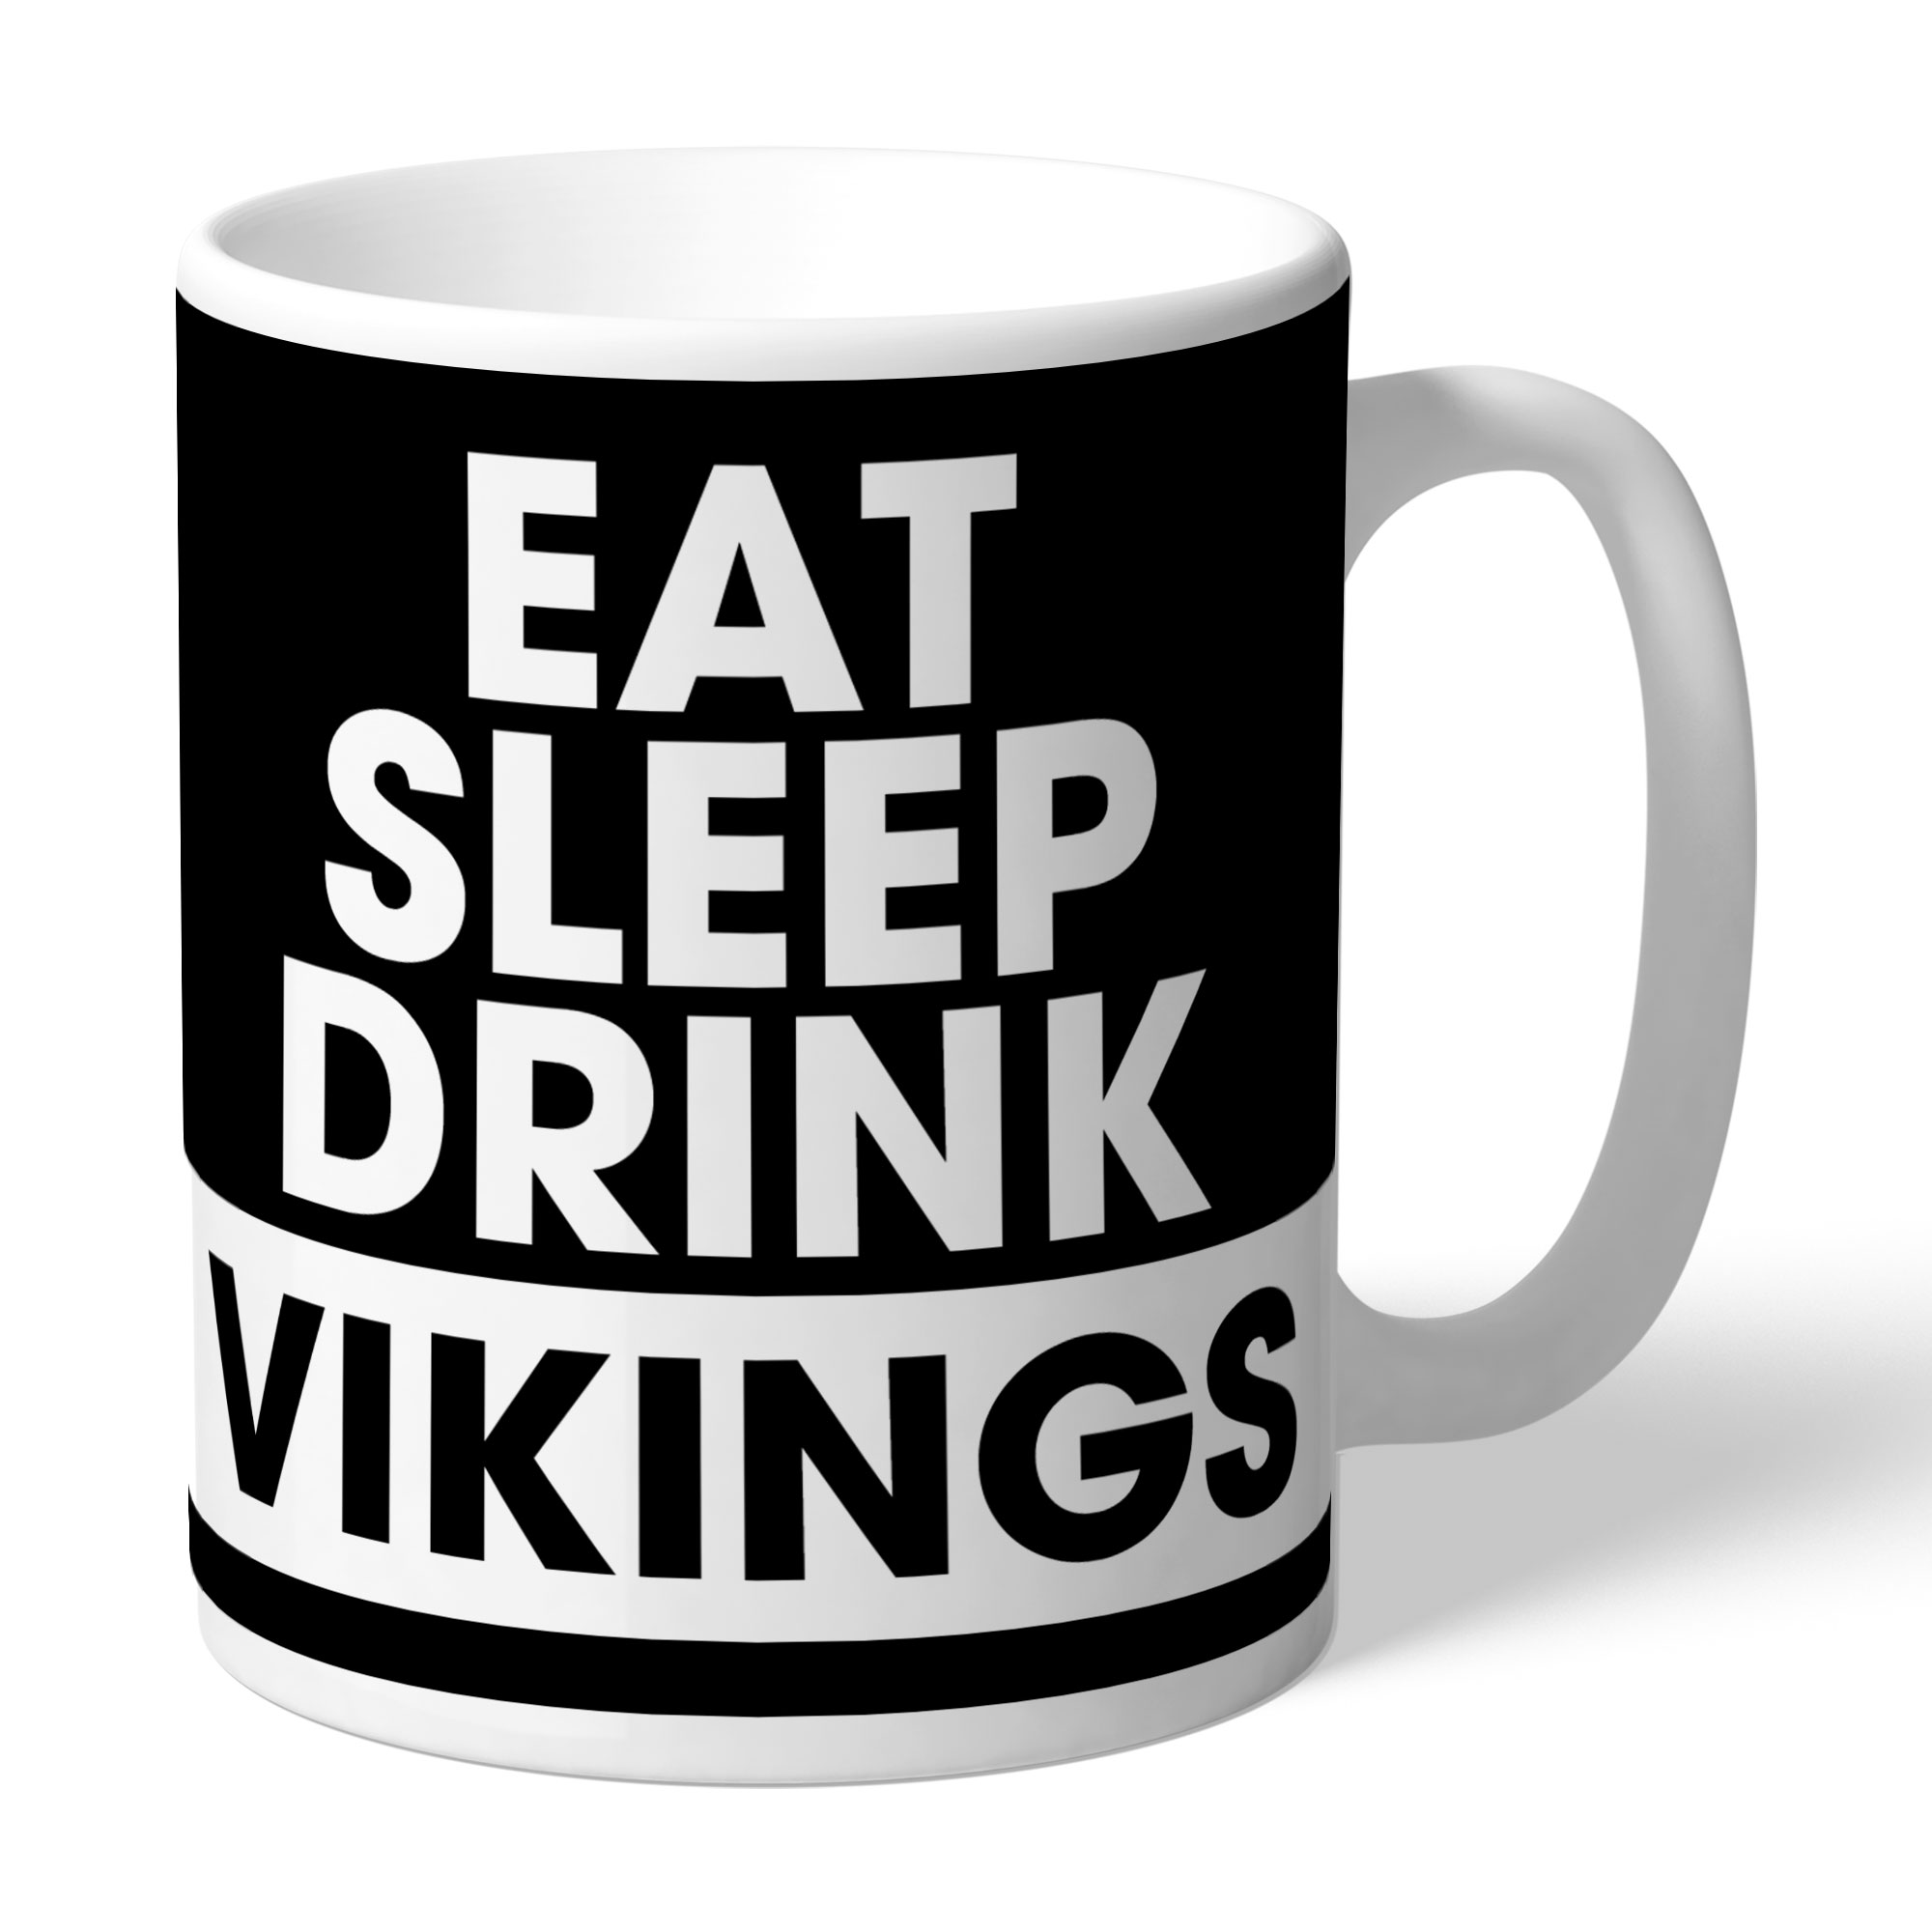 Widnes Vikings Eat Sleep Drink Mug